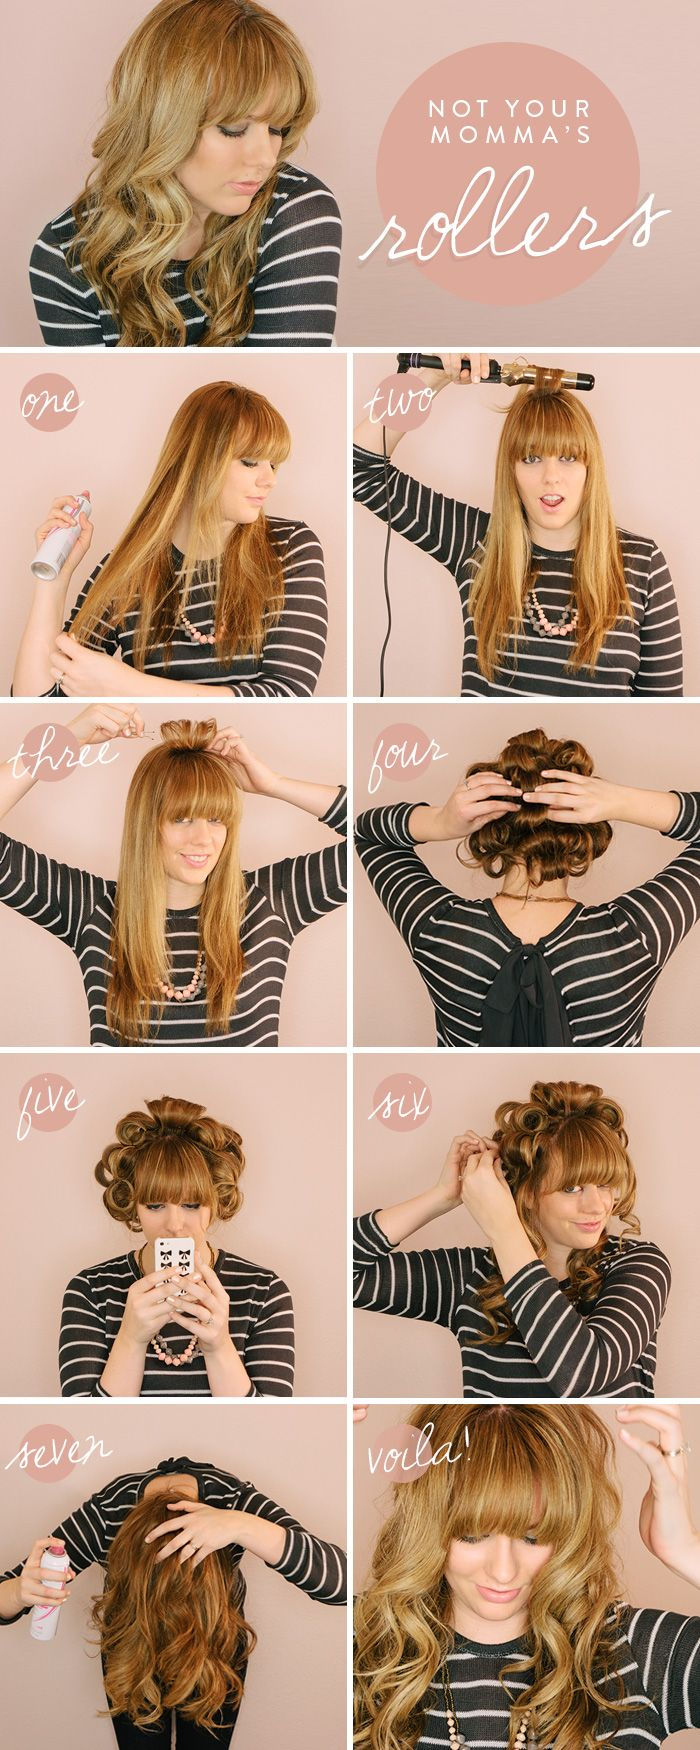 Not Your Momma's Rollers, perfect curl tutorial by @Jenna Day